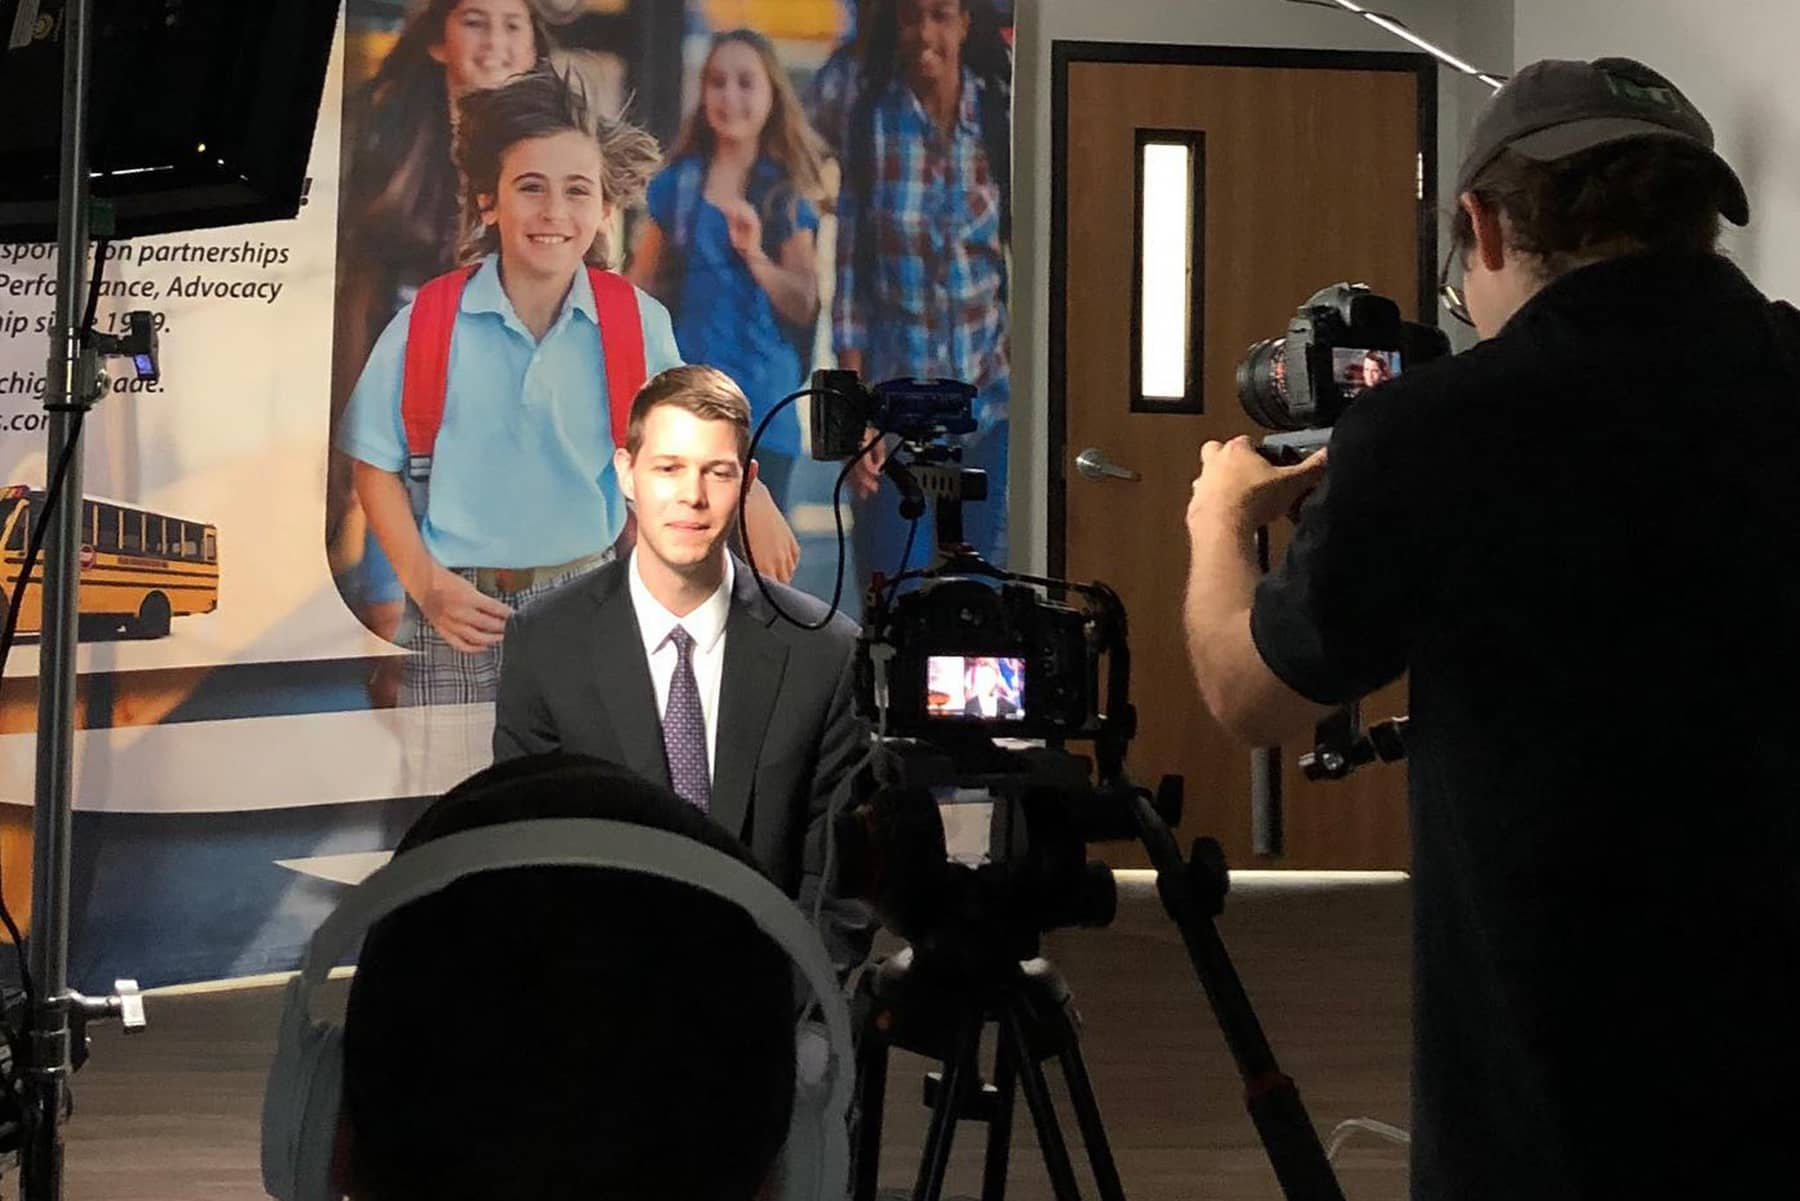 Picture showing a professional, business video shoot